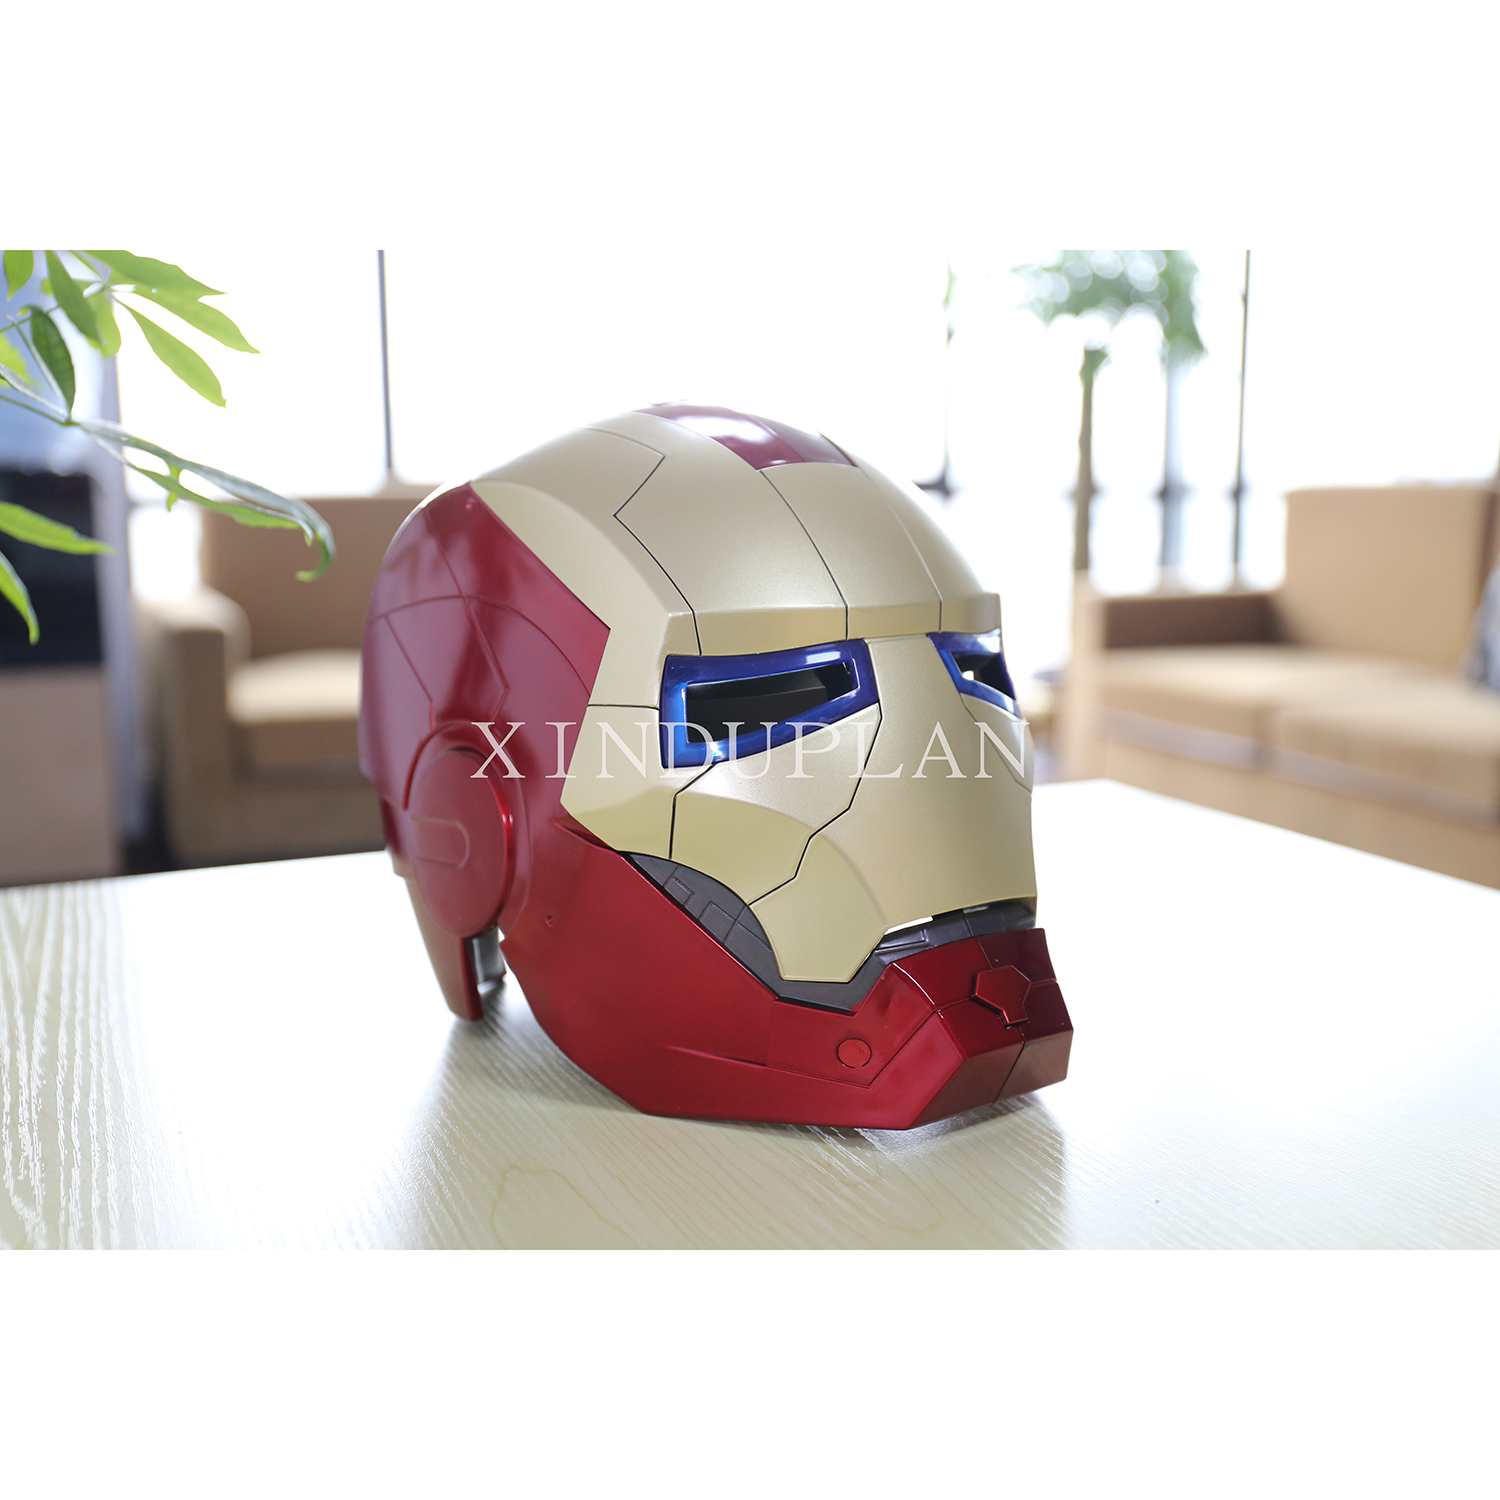 XINDUPLAN Marvel Shield Movie Avengers iron Man Helmet Light Eye Cosplay Action Figure Toys 22cm Kids Collection Model 0294 new hot 17cm avengers thor action figure toys collection christmas gift doll with box j h a c g